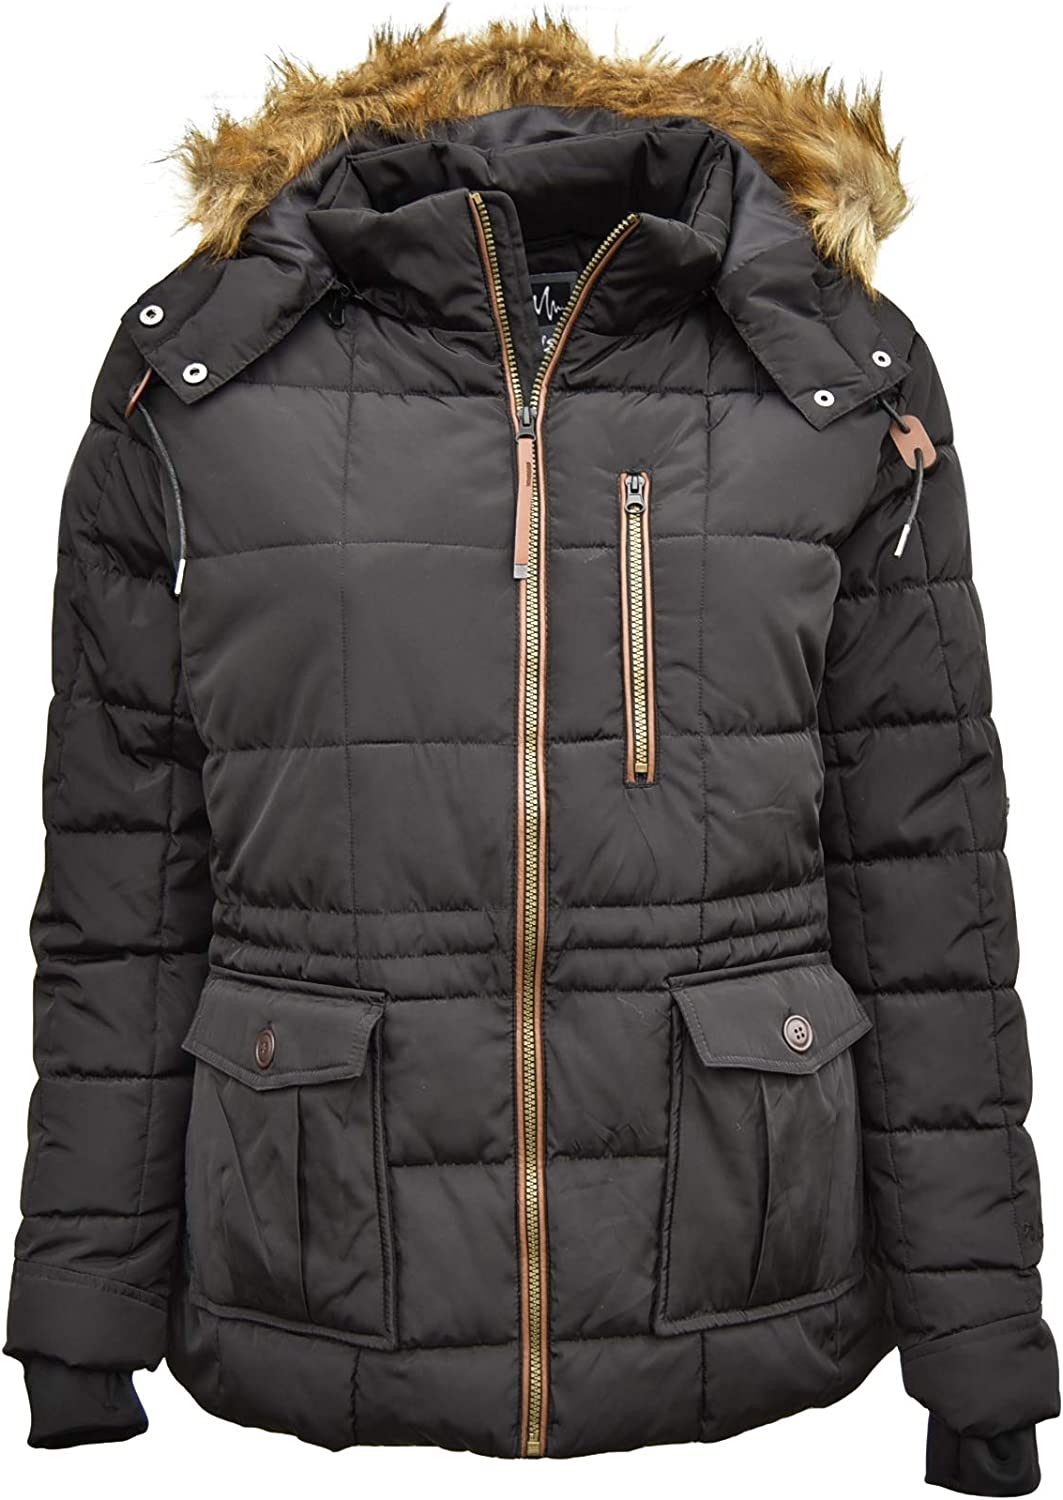 Image of Anoraks & Lightweight Jackets Pulse Womens Plus Size Extended Arrow Down Alt Quilted Parka Anorak Coat